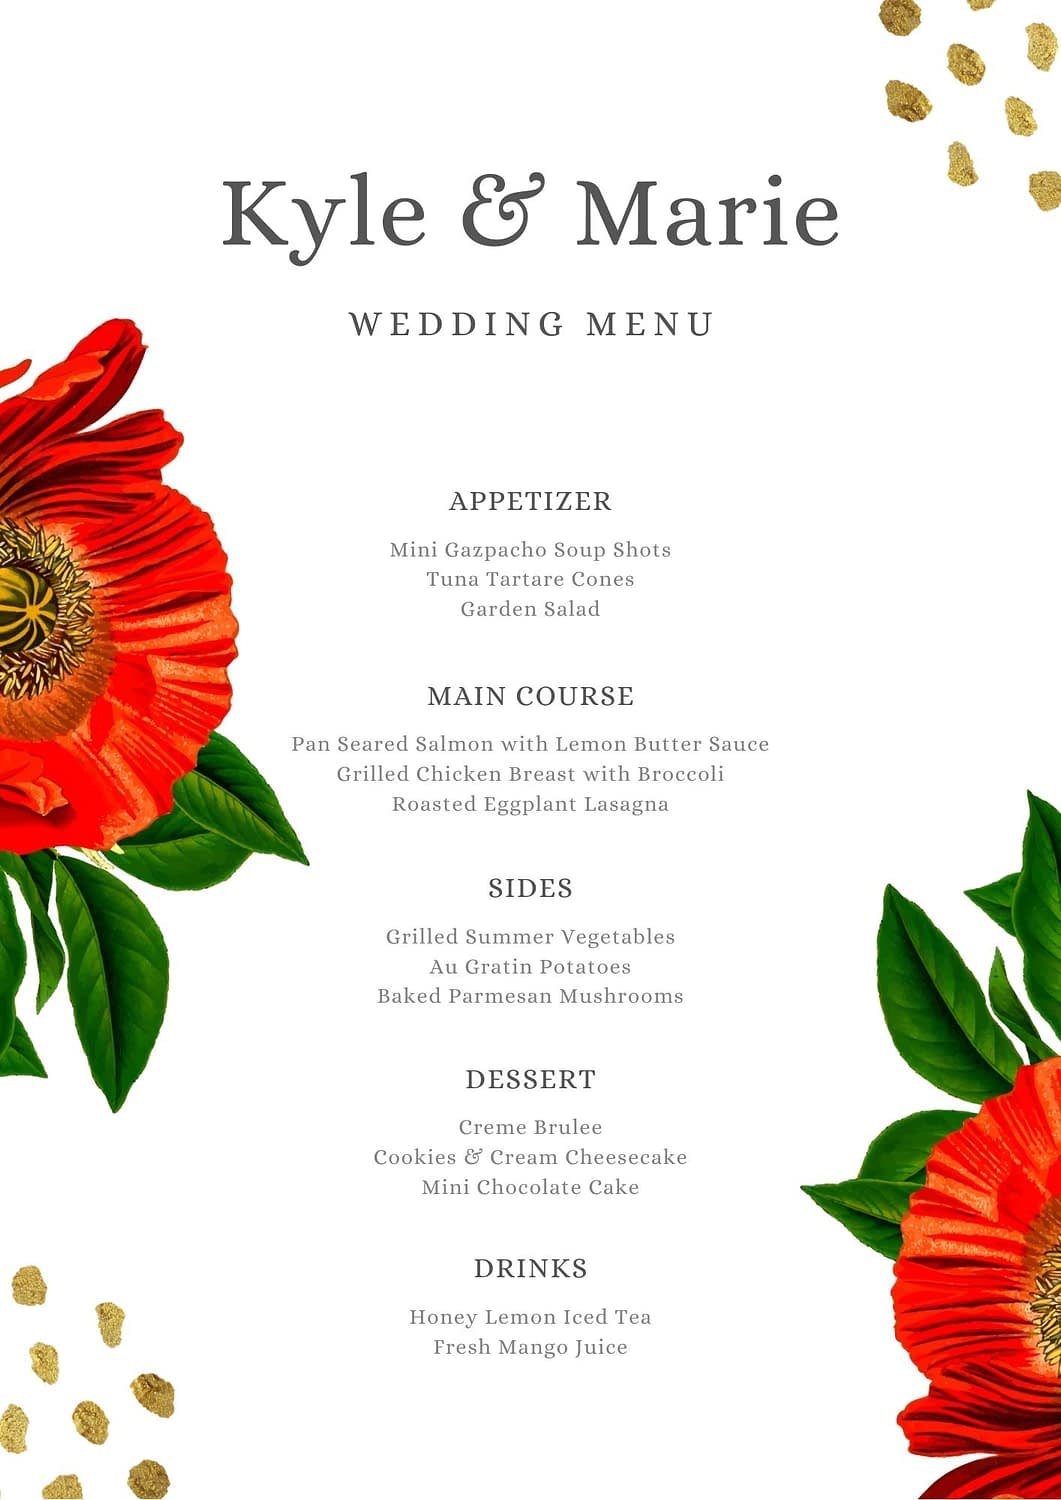 Canva offers wedding menus, featured modern wedding templates, wedding invitations, save the date cards and more